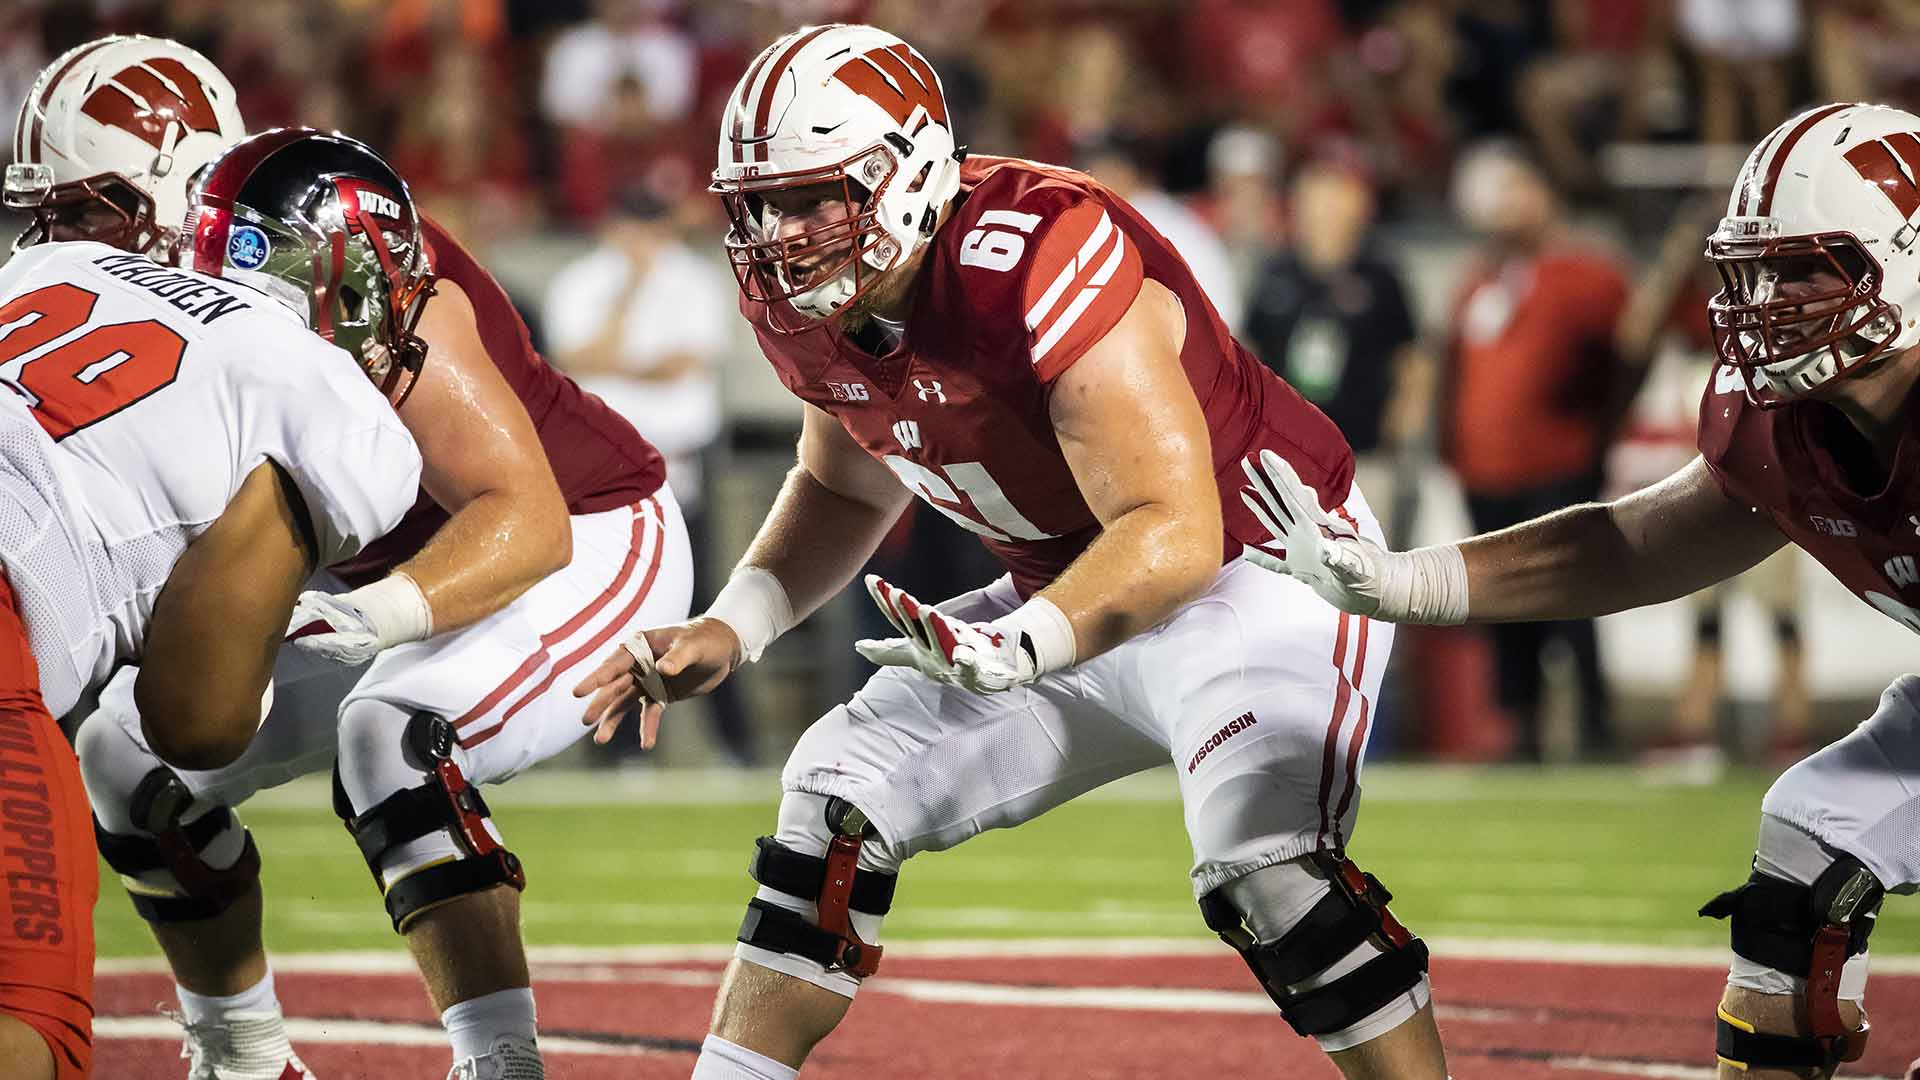 Wisconsin Badgers offensive lineman Tyler Biadasz (61) during an NCAA college football game against the Western Kentucky Hilltoppers Friday, August 31, 2018, in Madison, Wisconsin. The Badgers won 34-3. (Photo by David Stluka)